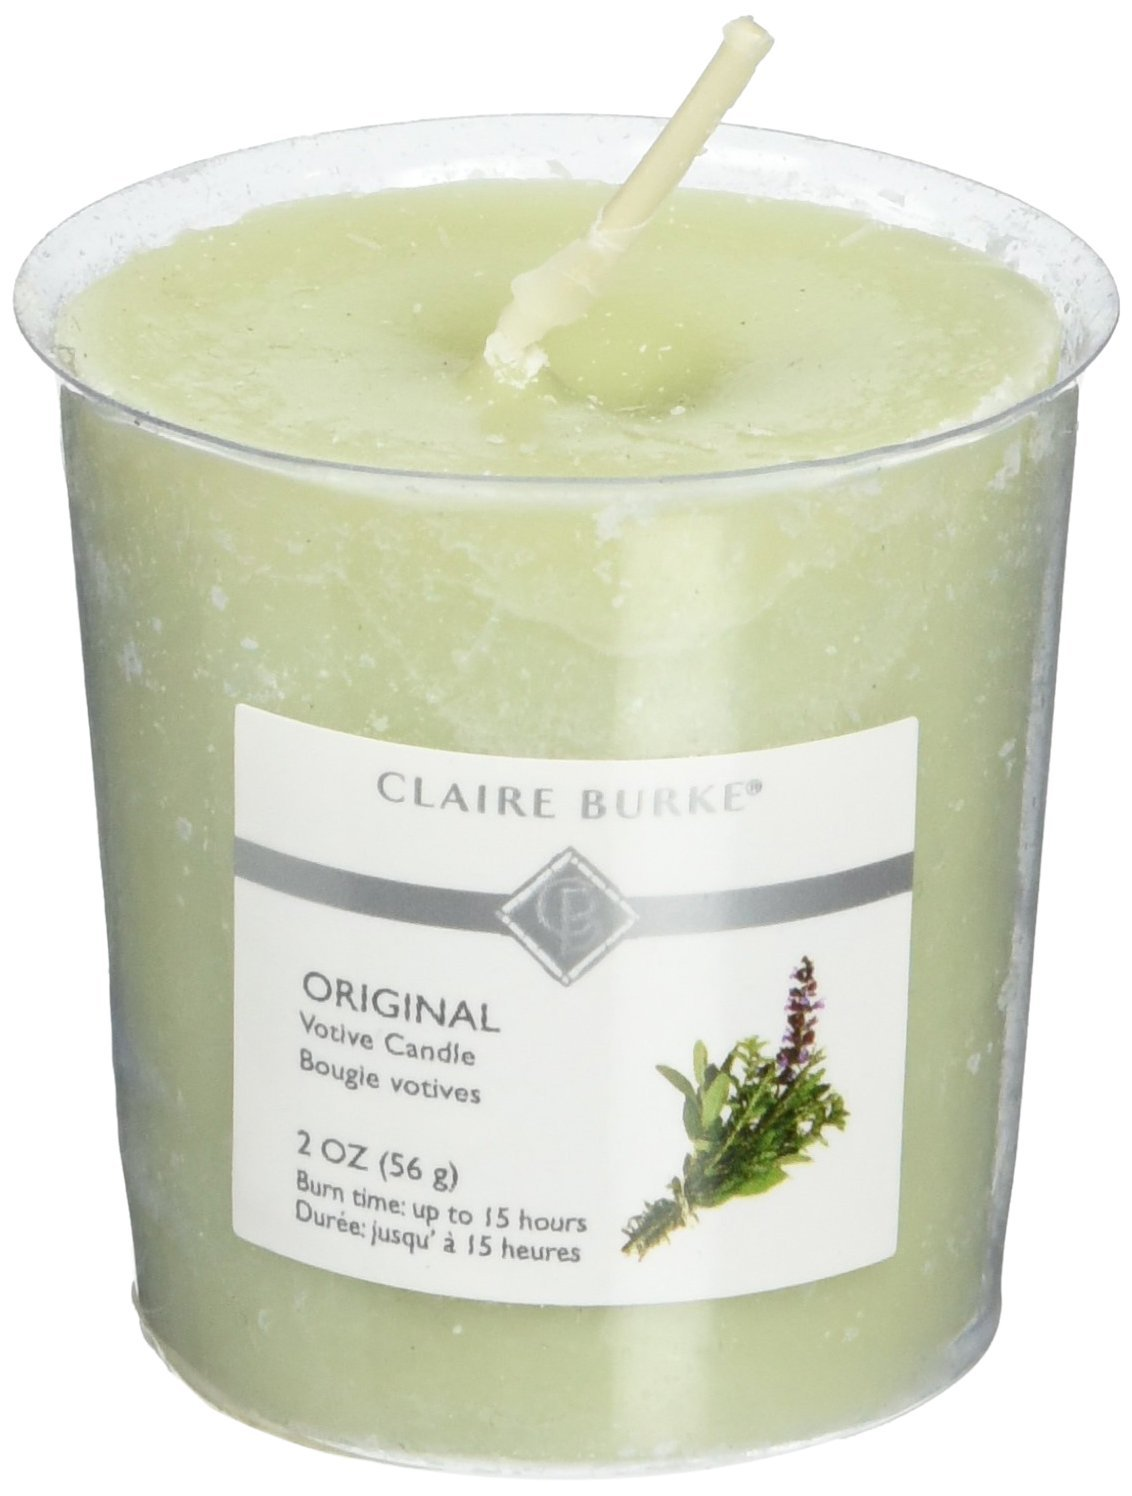 Claire Burke Original Votive Candles, 1-Count 08603.041.000